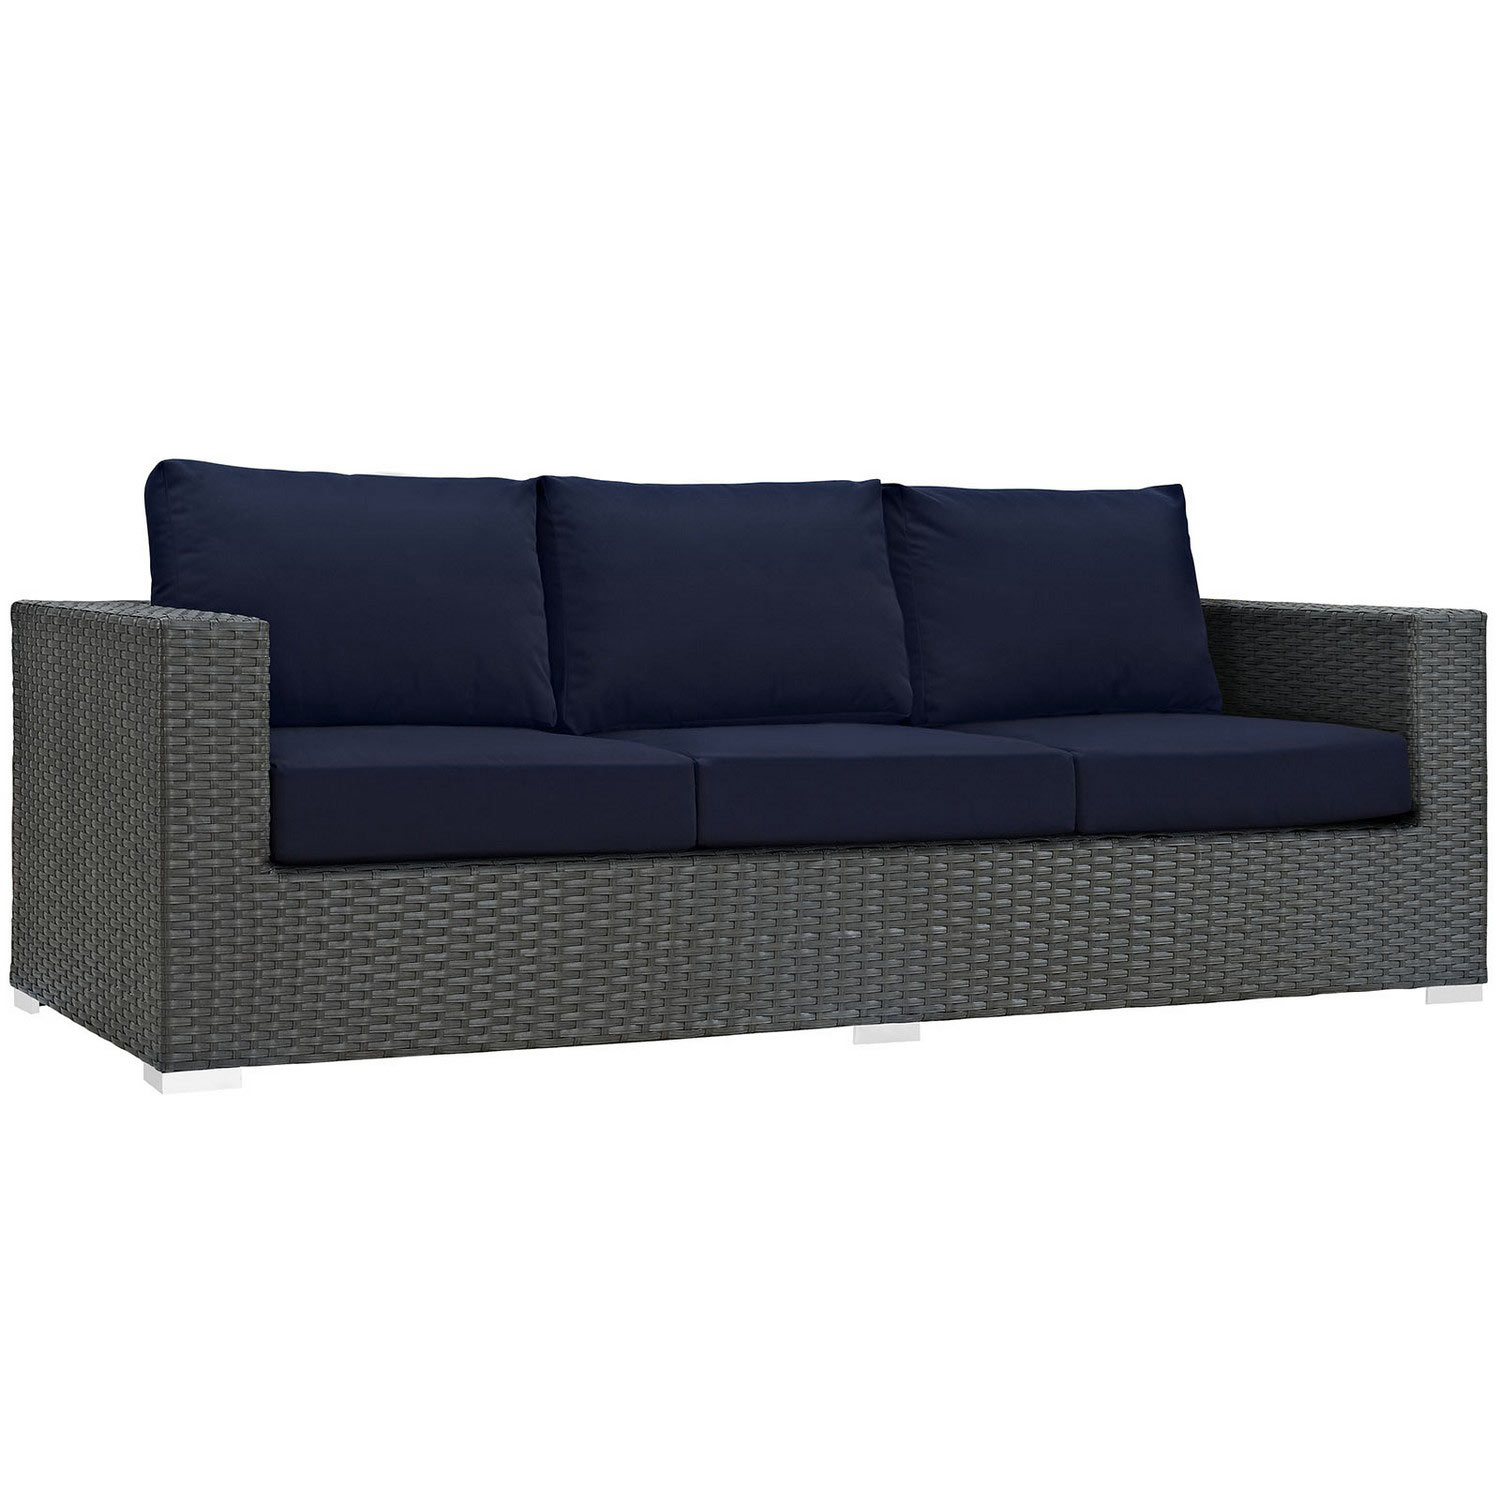 Modway Sojourn Outdoor Patio Sunbrella Sofa - Canvas Navy